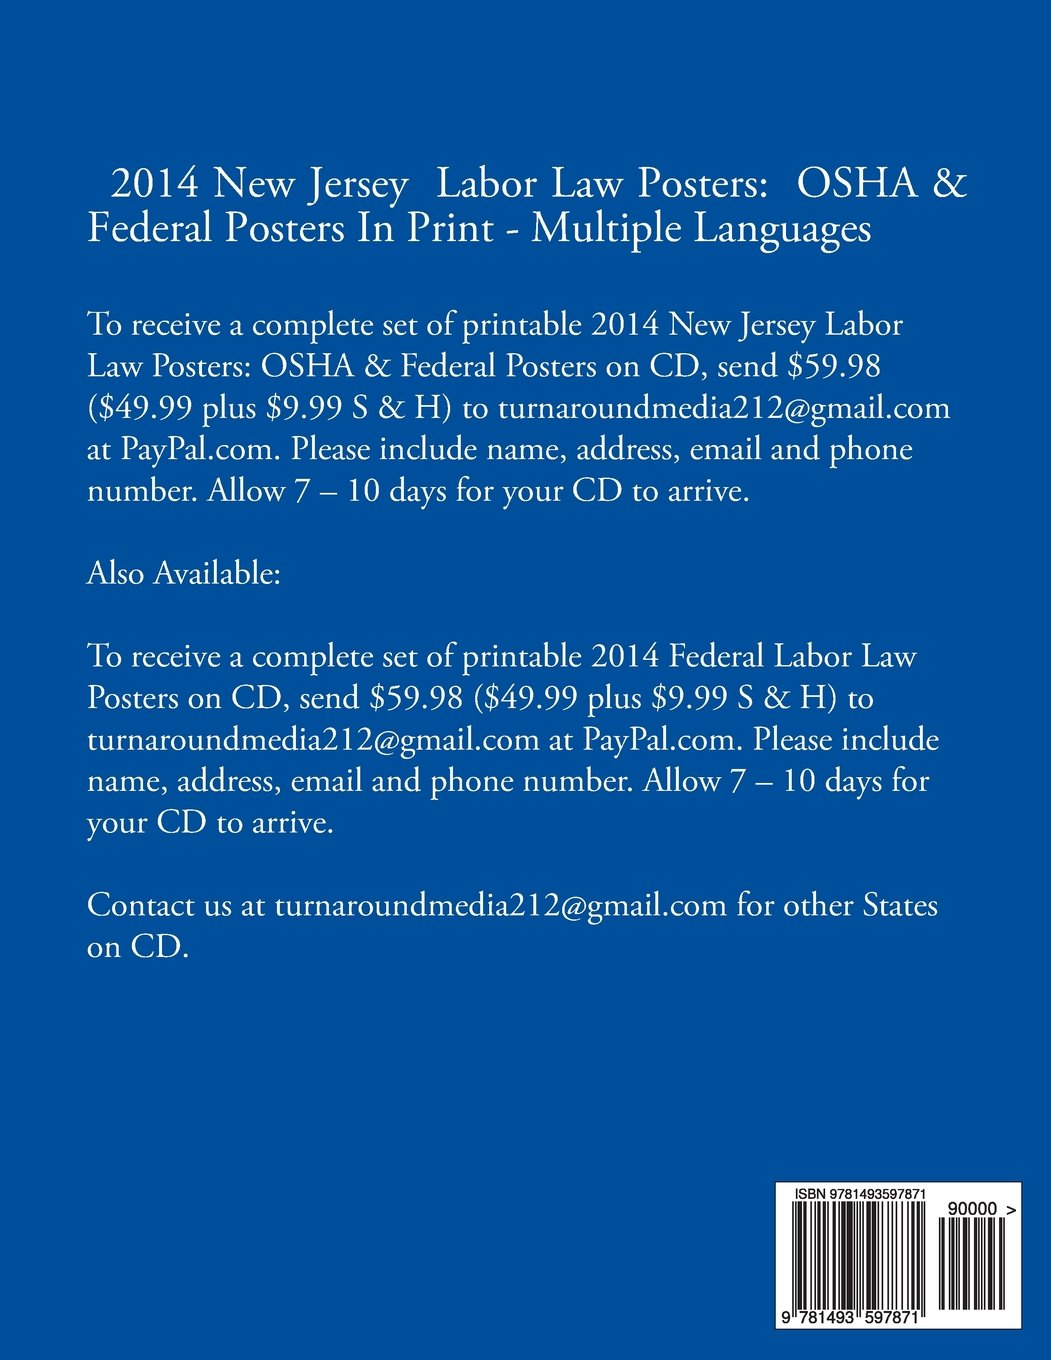 2014 New Jersey Labor Law Posters: OSHA & Federal Posters In Print - Multiple Languages (Multilingual Edition) by CreateSpace Independent Publishing Platform